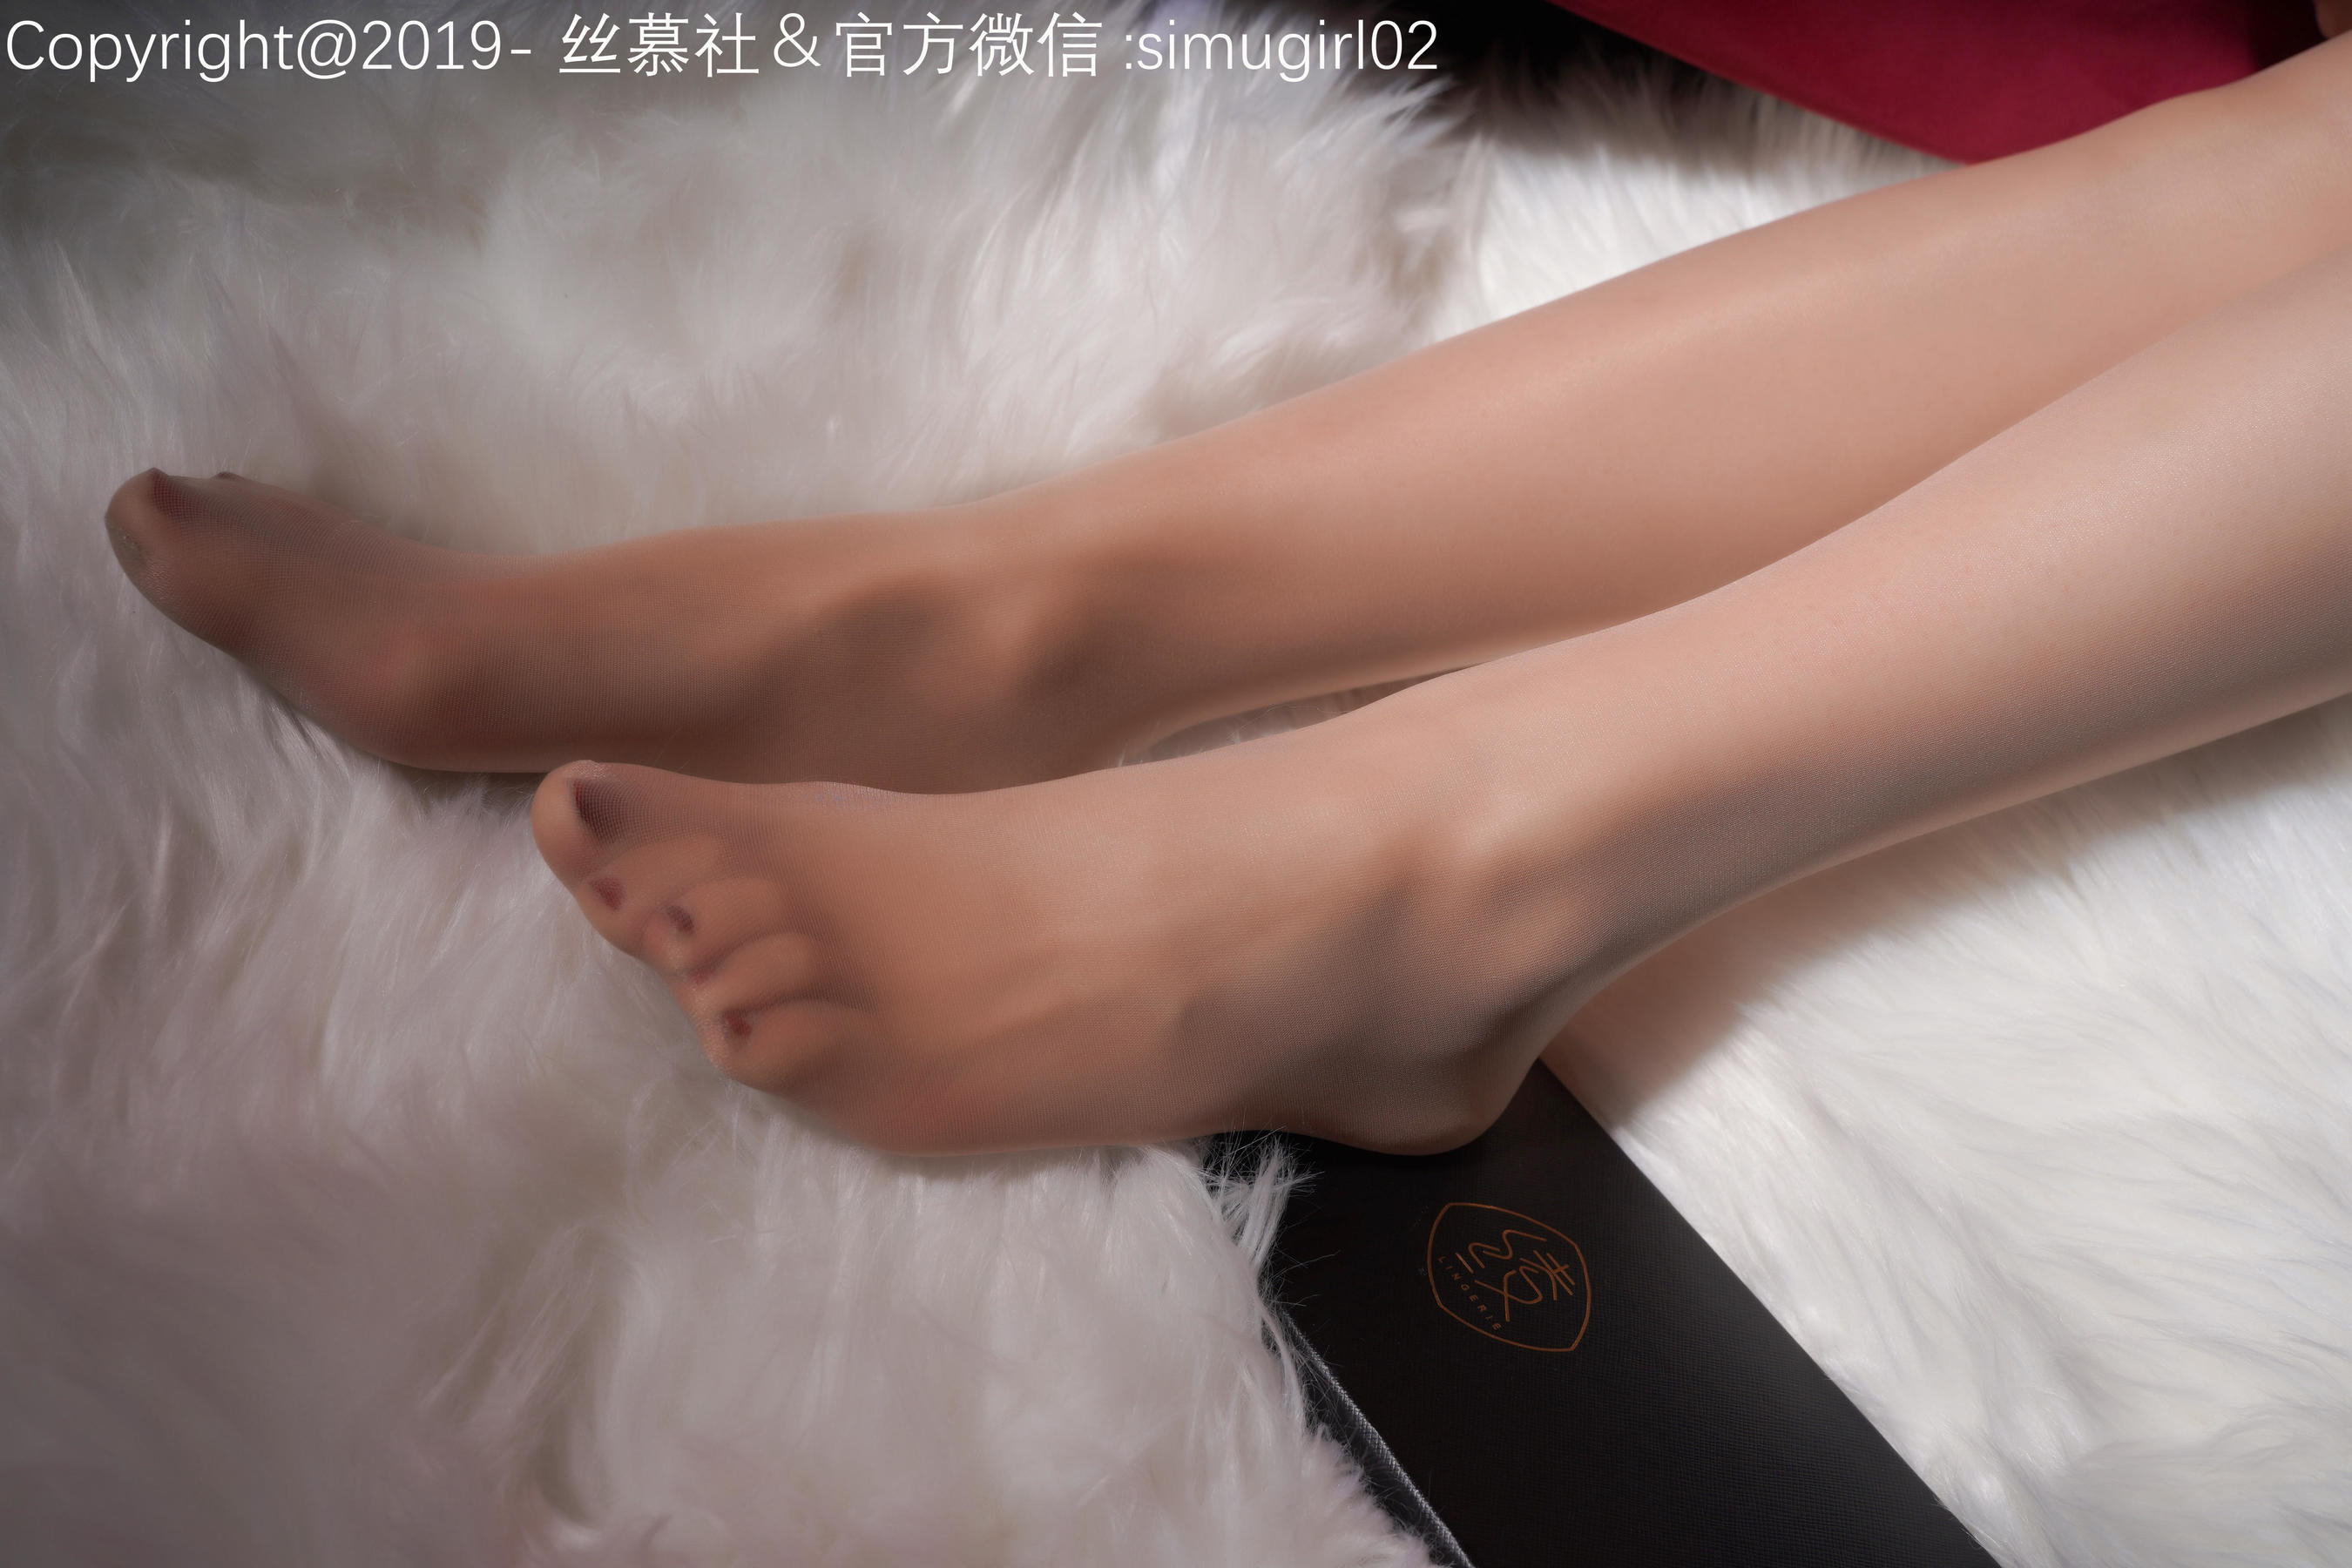 """[Simu] SM016 Linlin-""""The Goddess of the Republic of China"""" 35"""